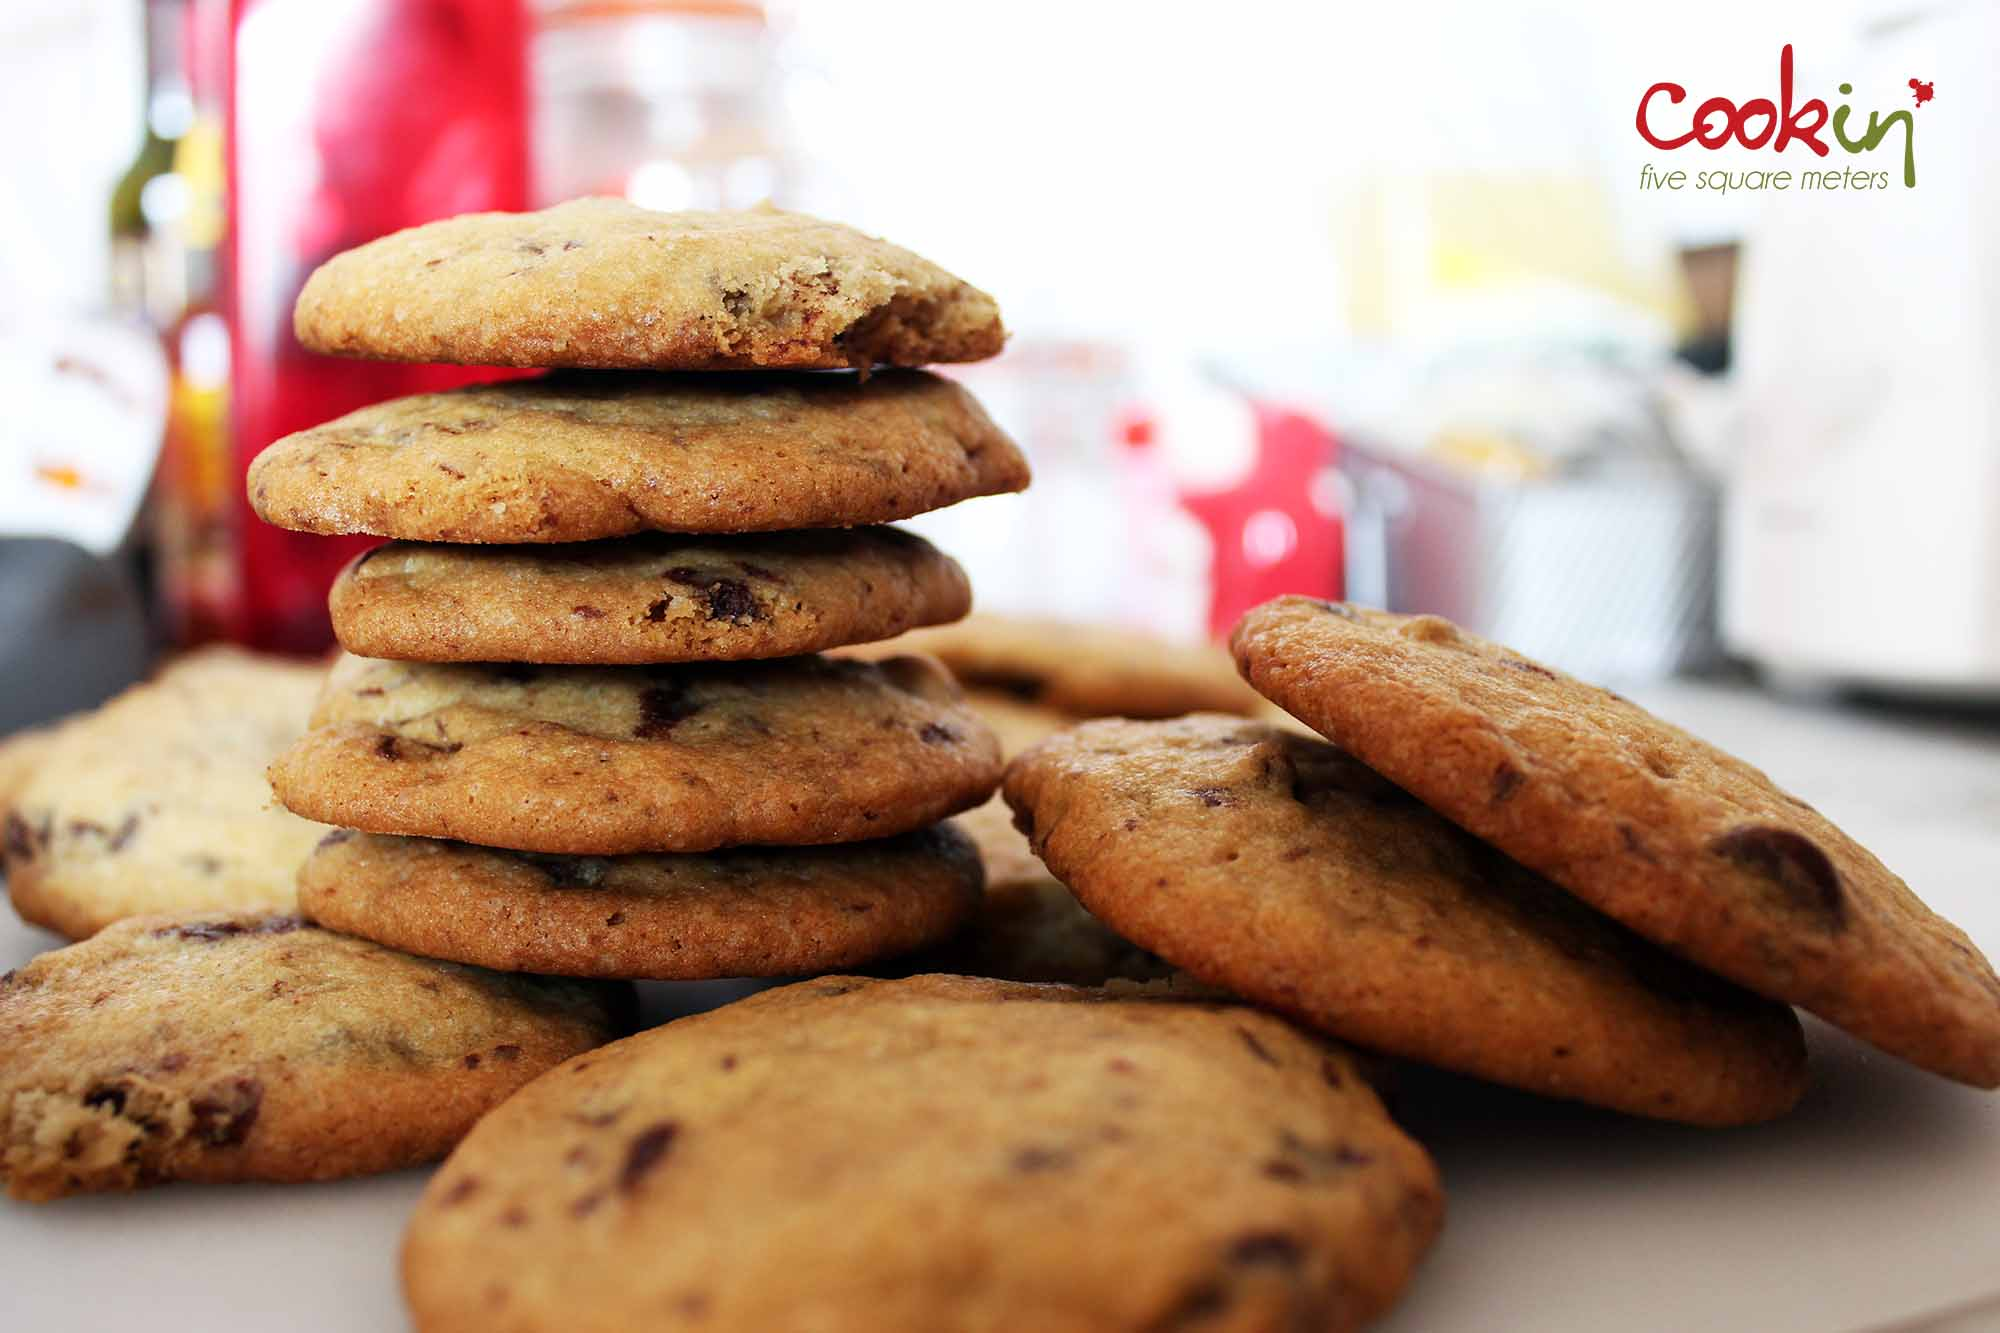 Nestlé Toll House Chocolate Chip Cookies | Cookin' five square meters